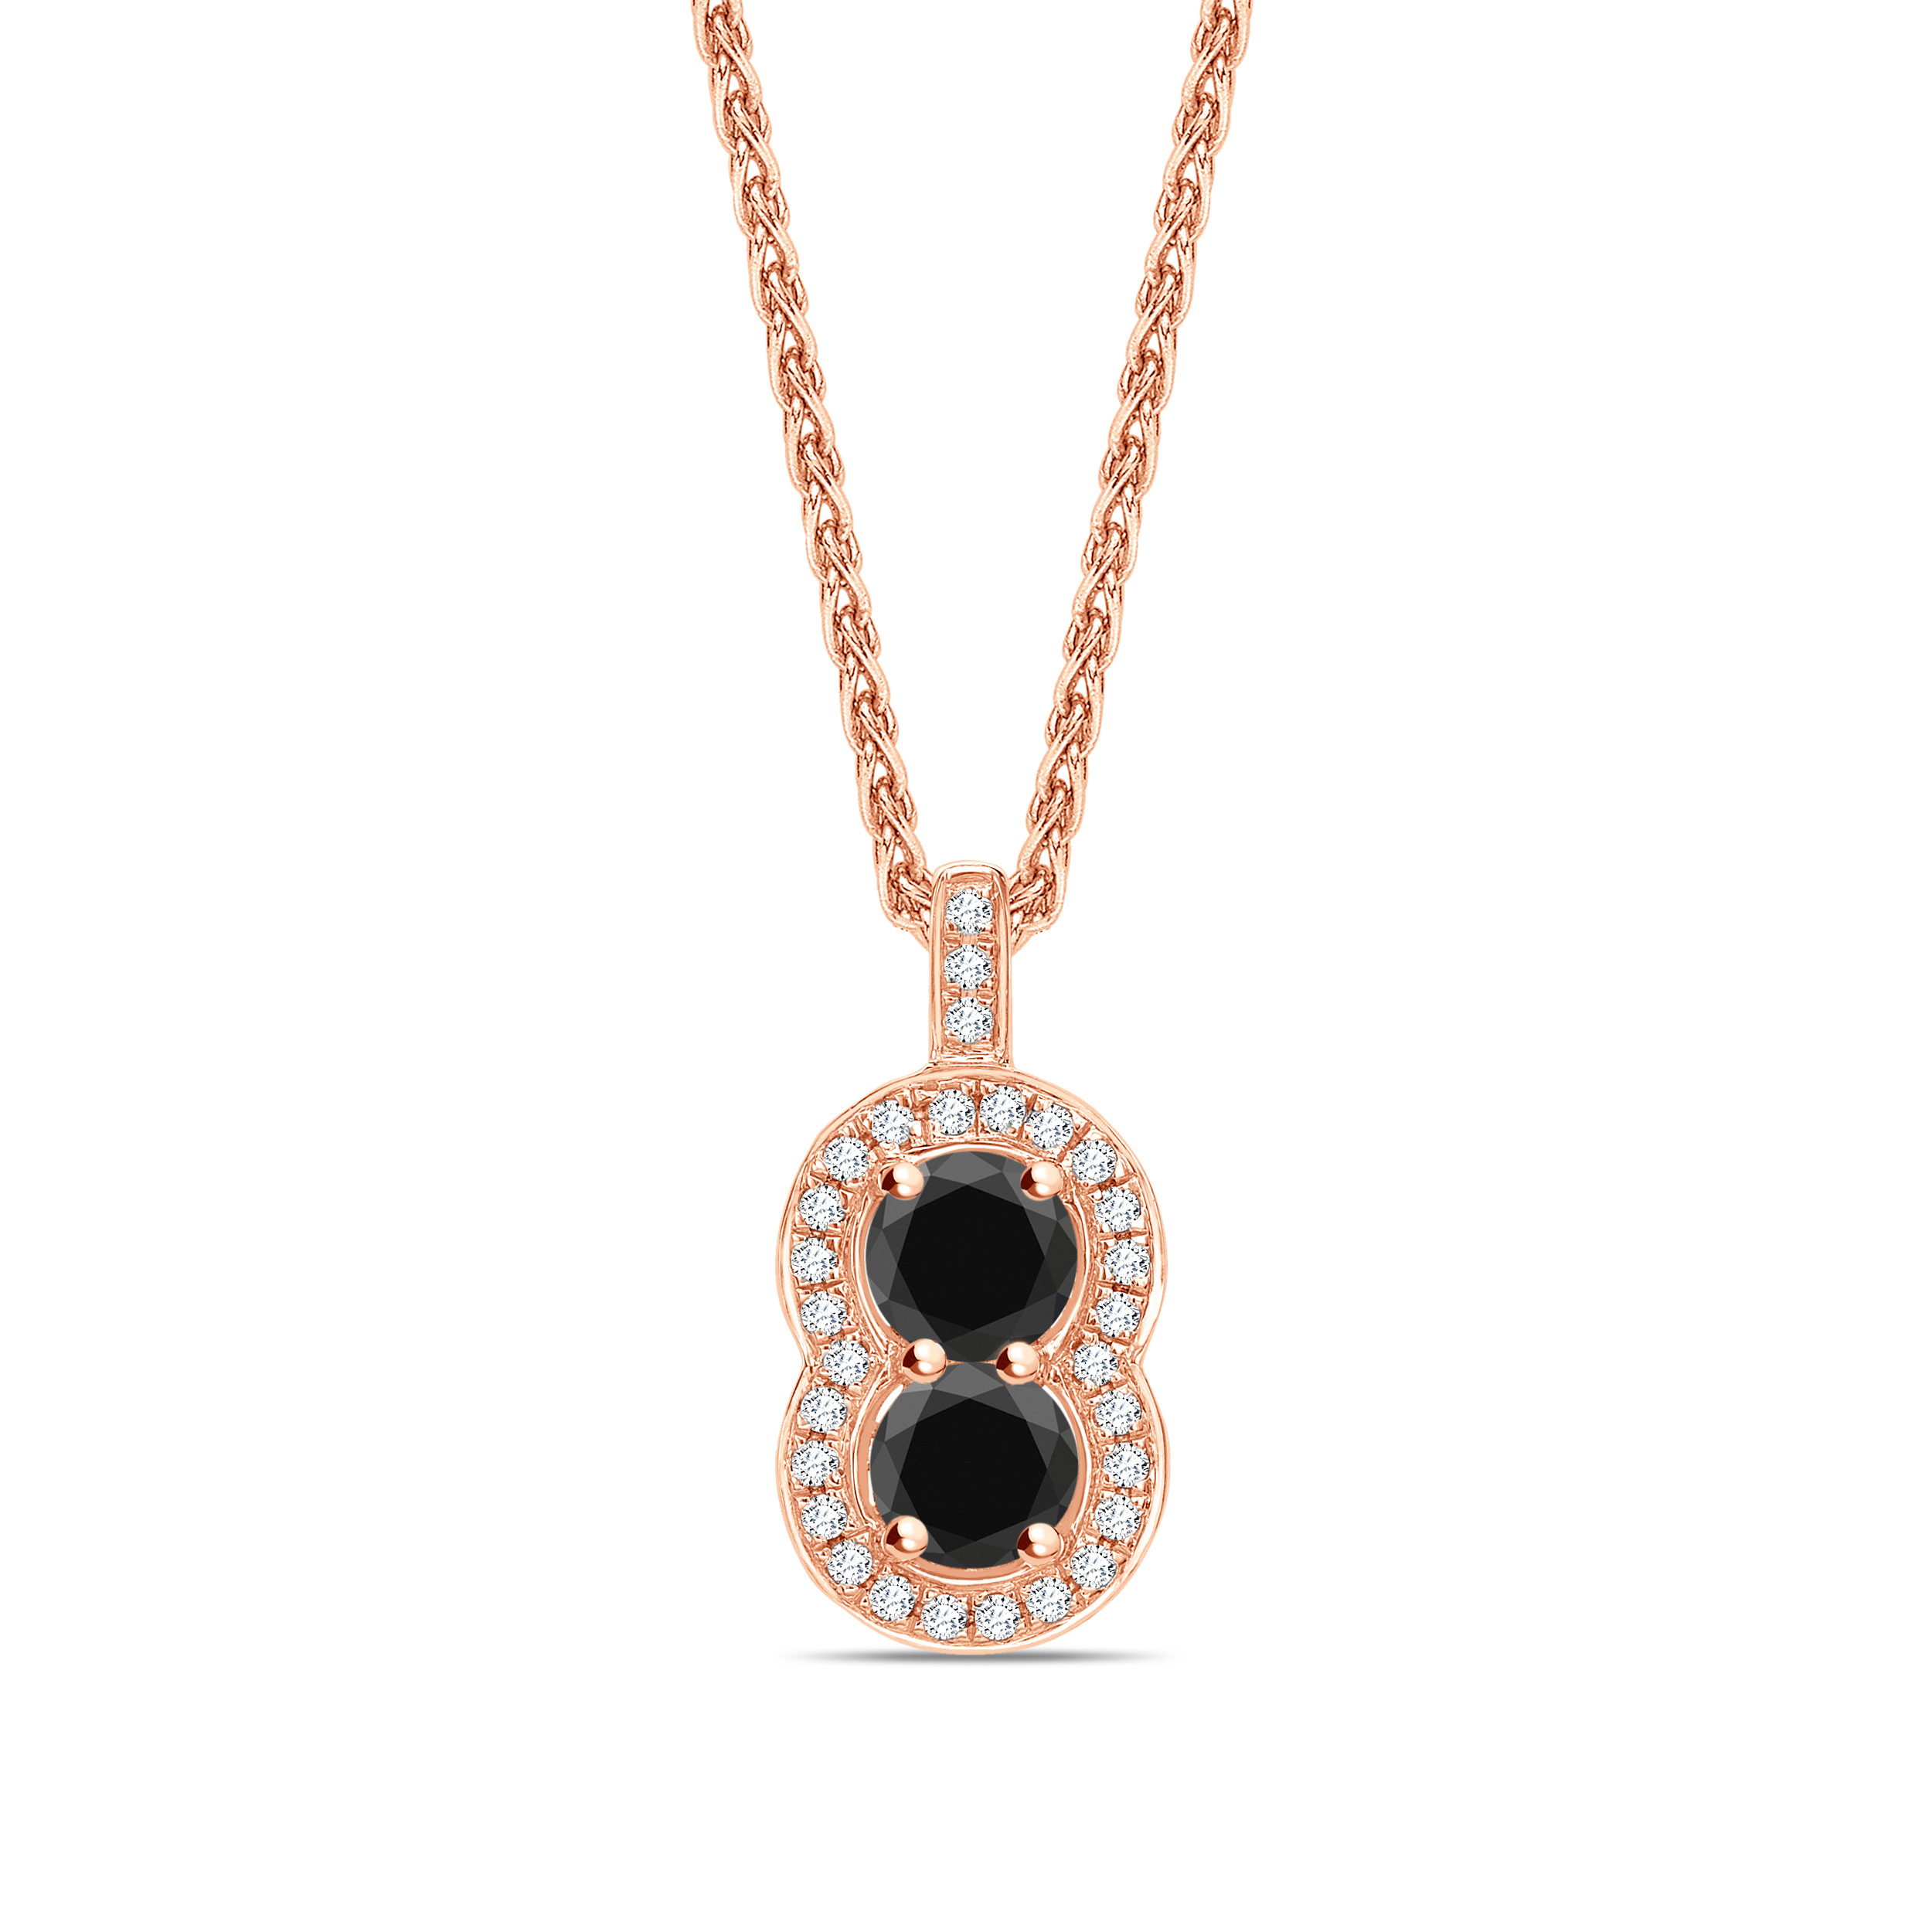 Halo Style Black Diamond Solitaire Pendants Necklace Classic in Round Cut